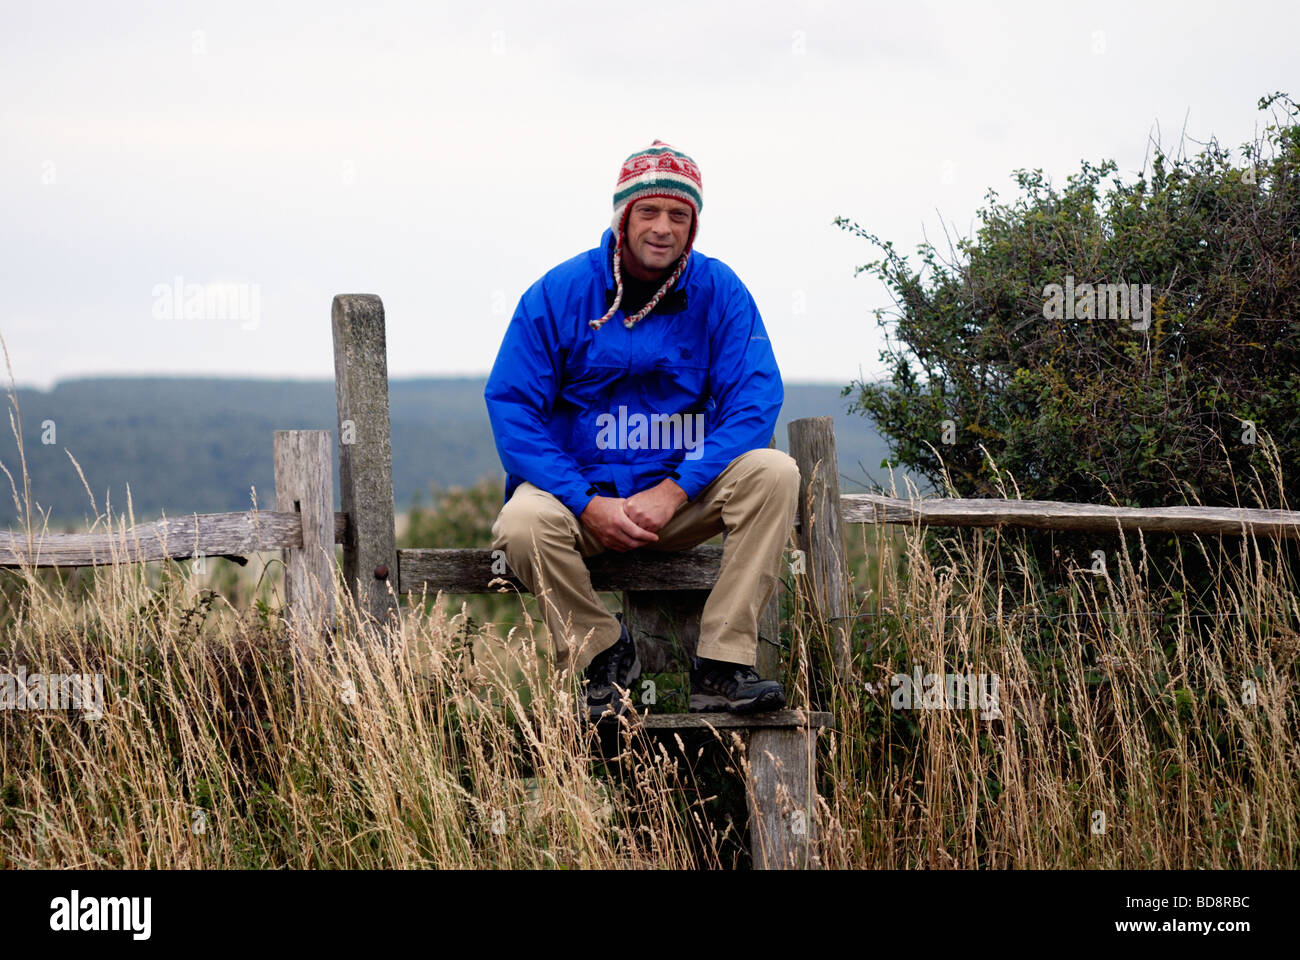 A man with a woolly hat sits and rests on a Stile - Stock Image